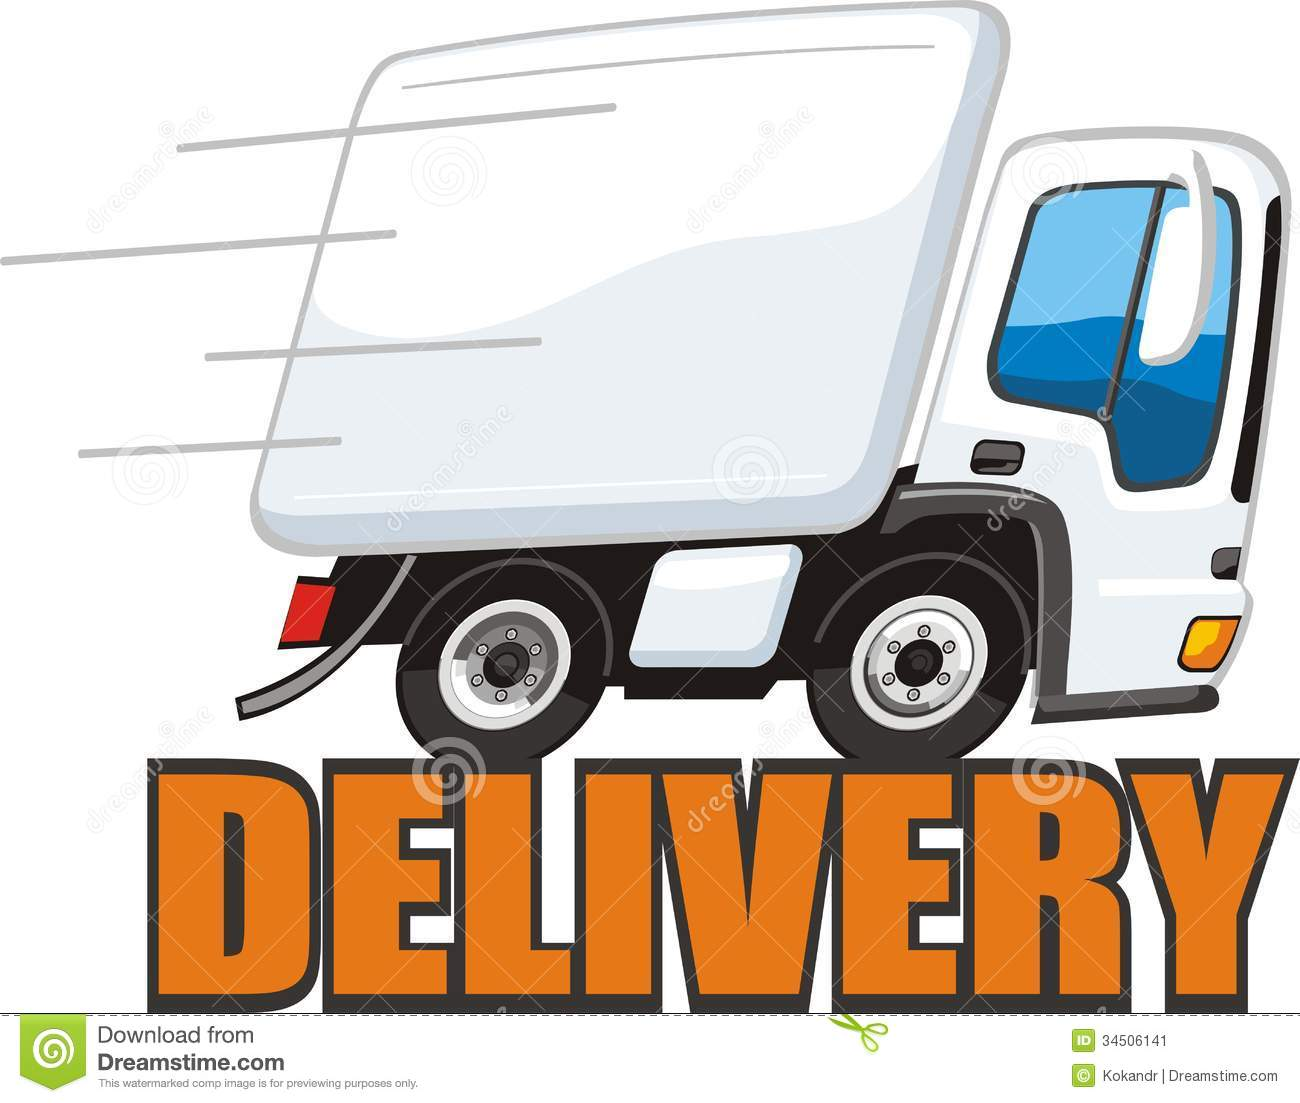 Shipping Delivery: Shipping Truck Clipart